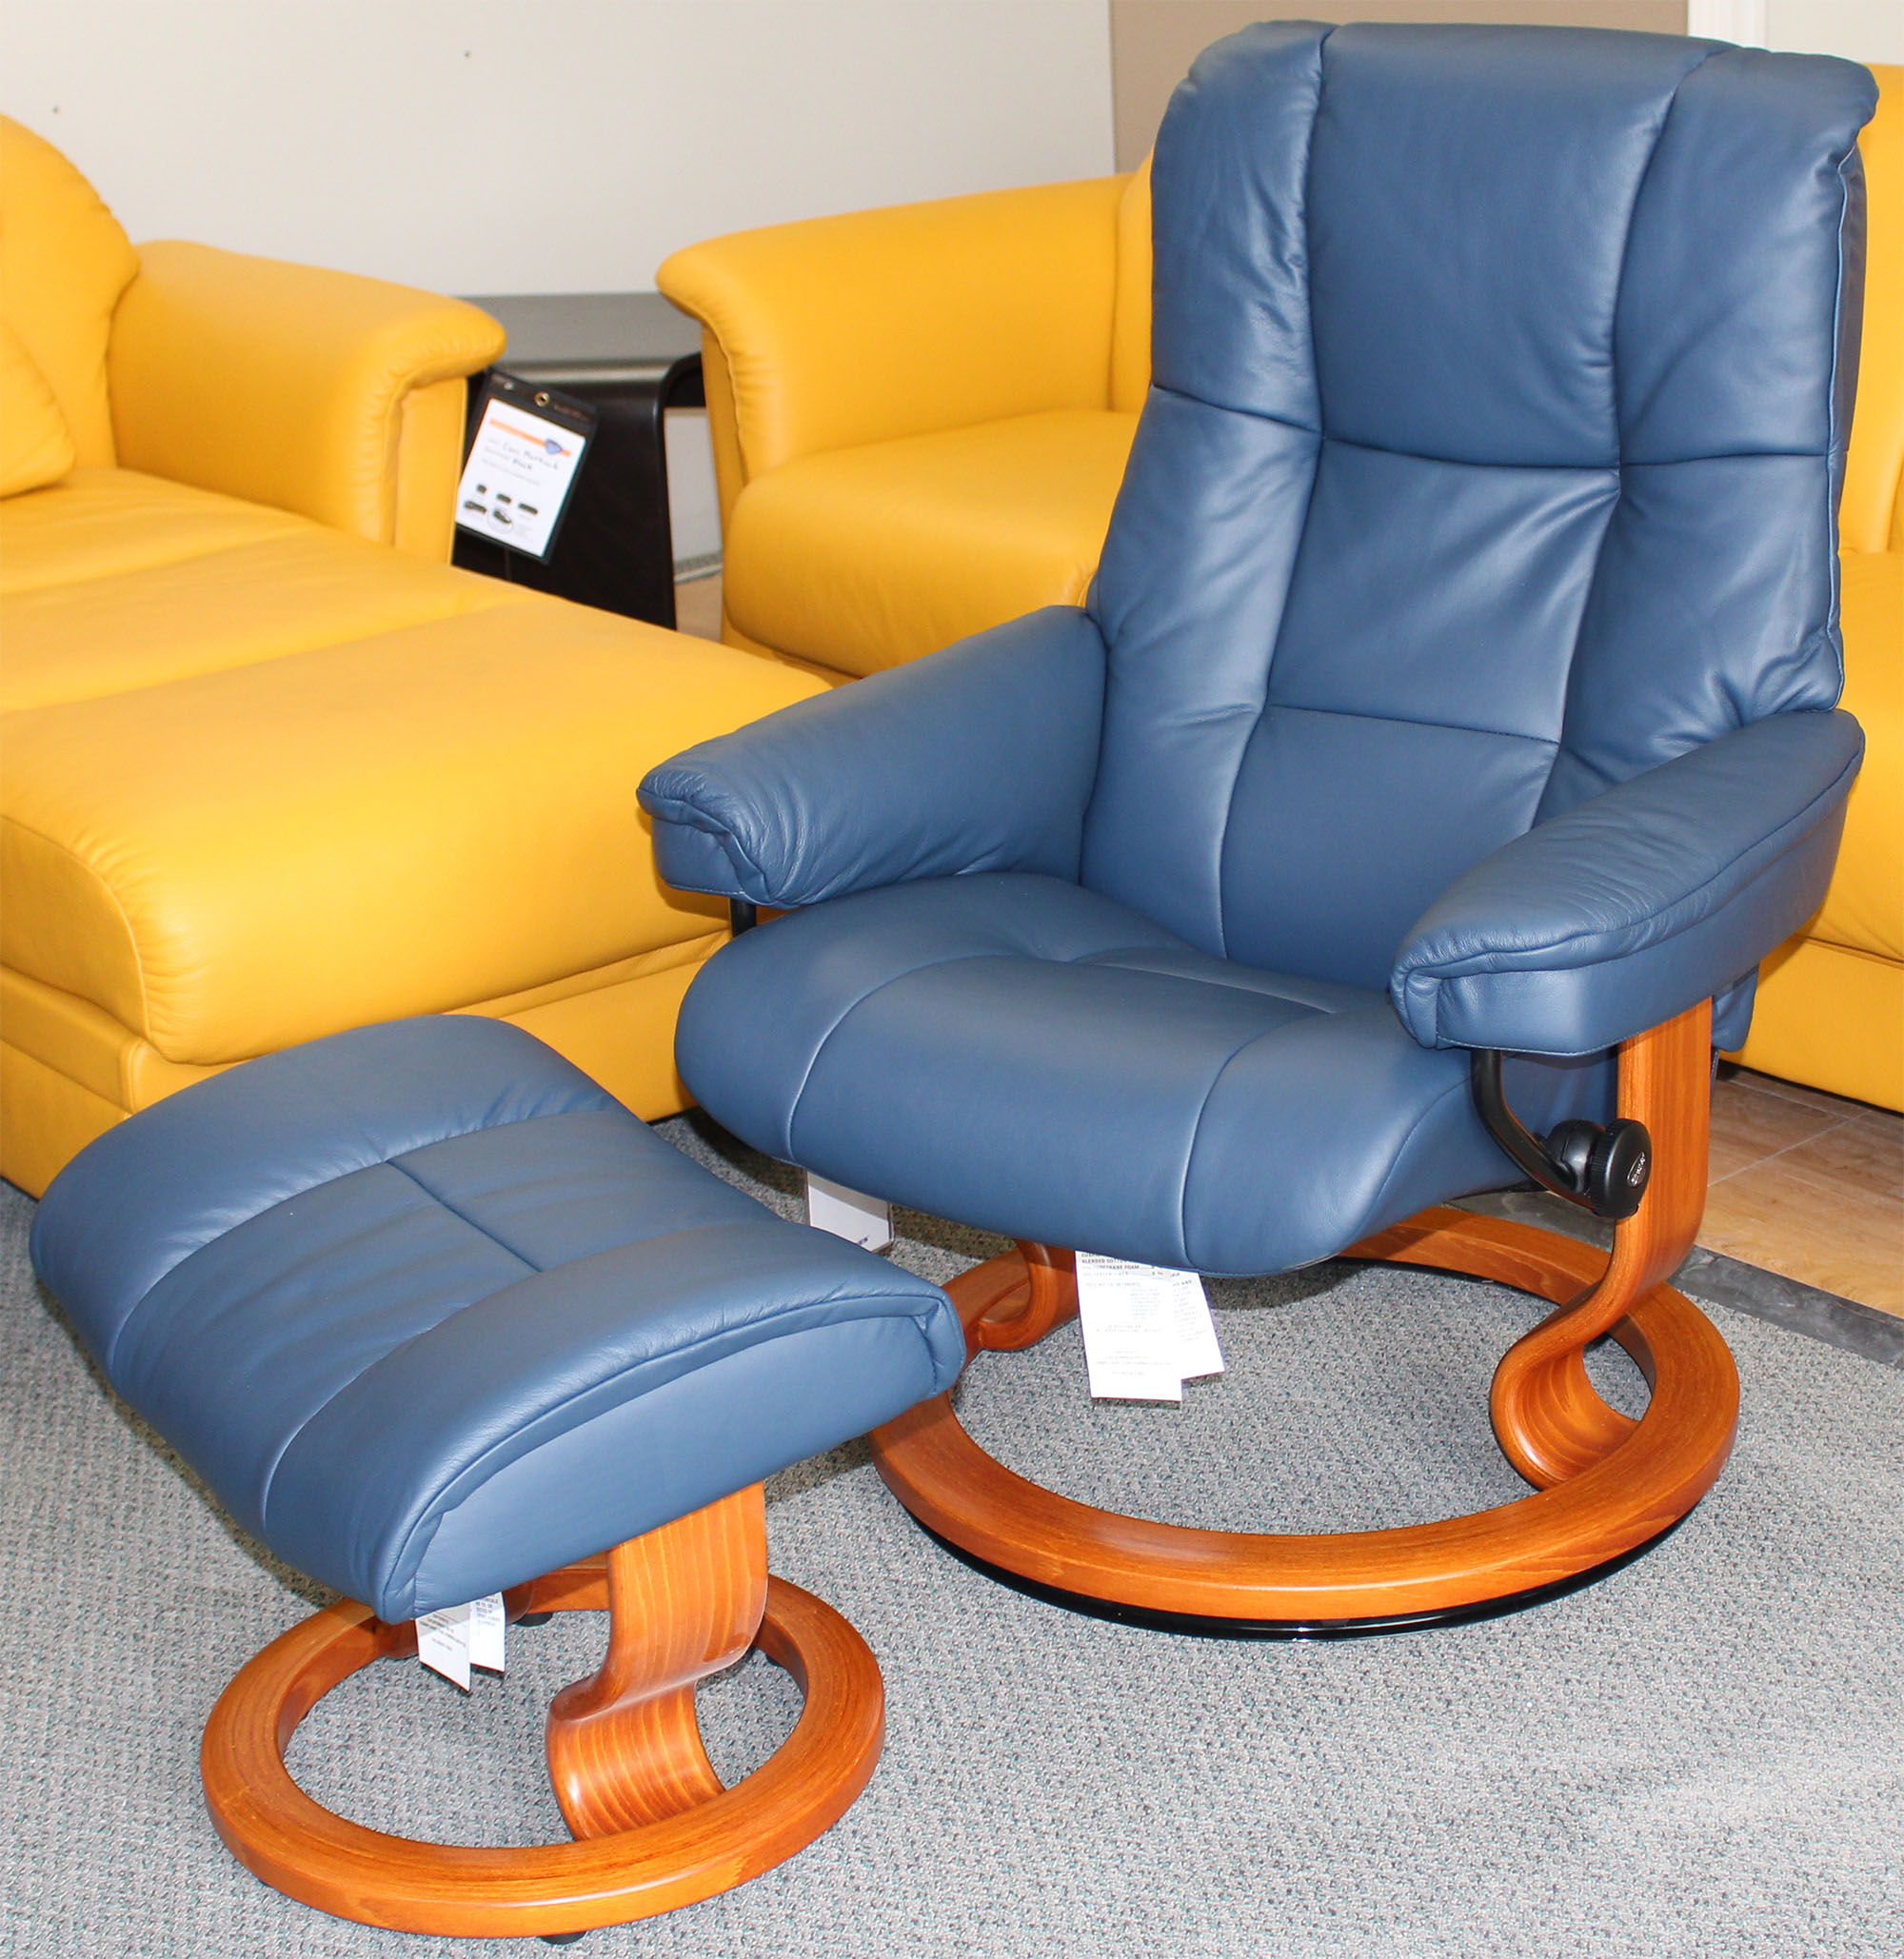 Fabulous Stressless Mayfair Paloma Oxford Blue Leather Recliner Chair And Ottoman By Ekornes Bralicious Painted Fabric Chair Ideas Braliciousco